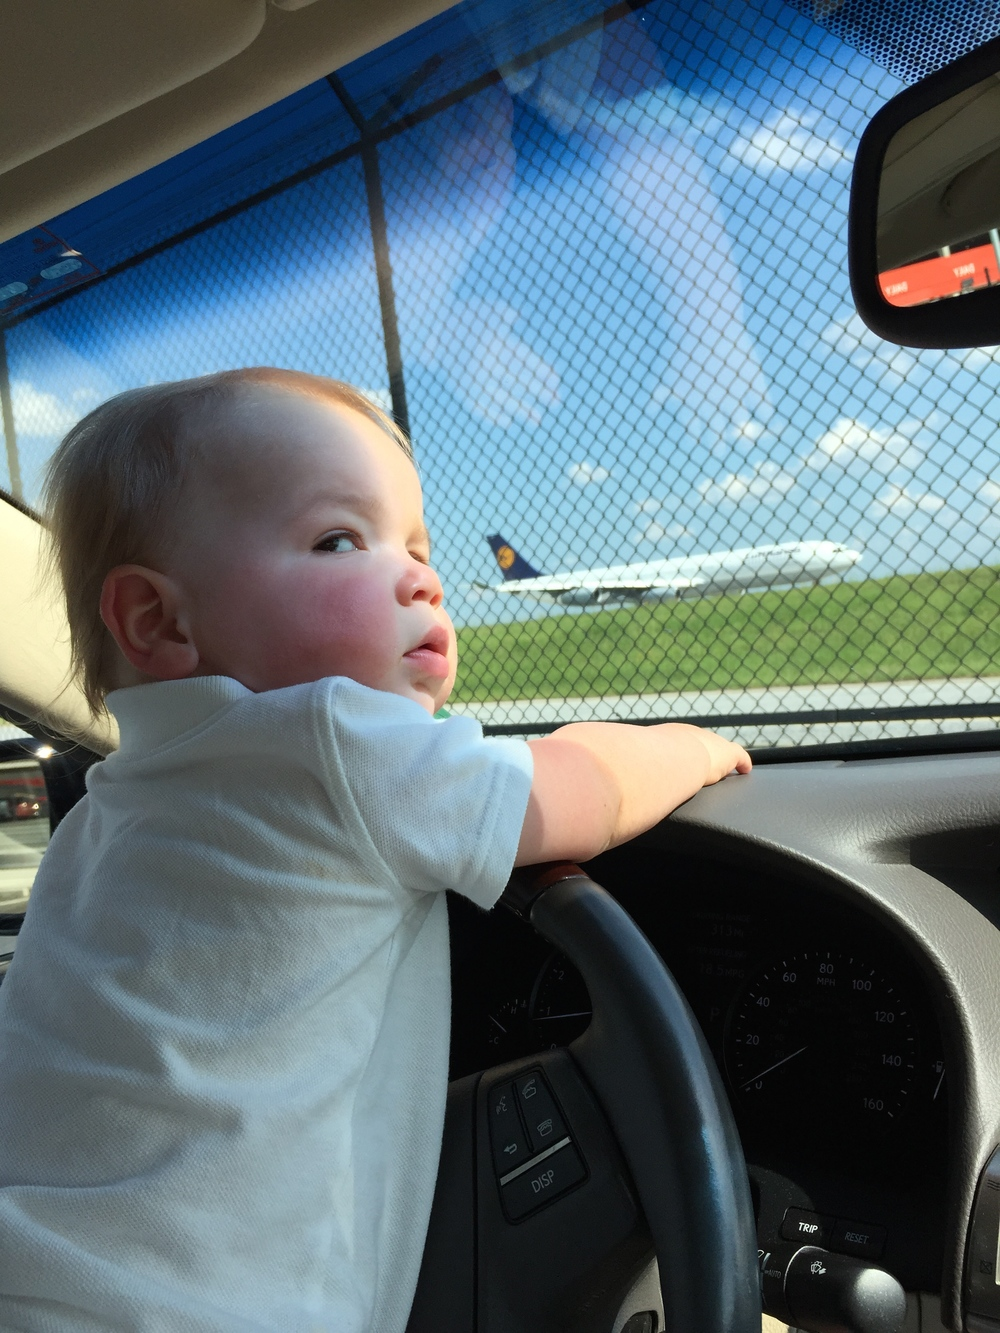 Watching planes like my daddy.